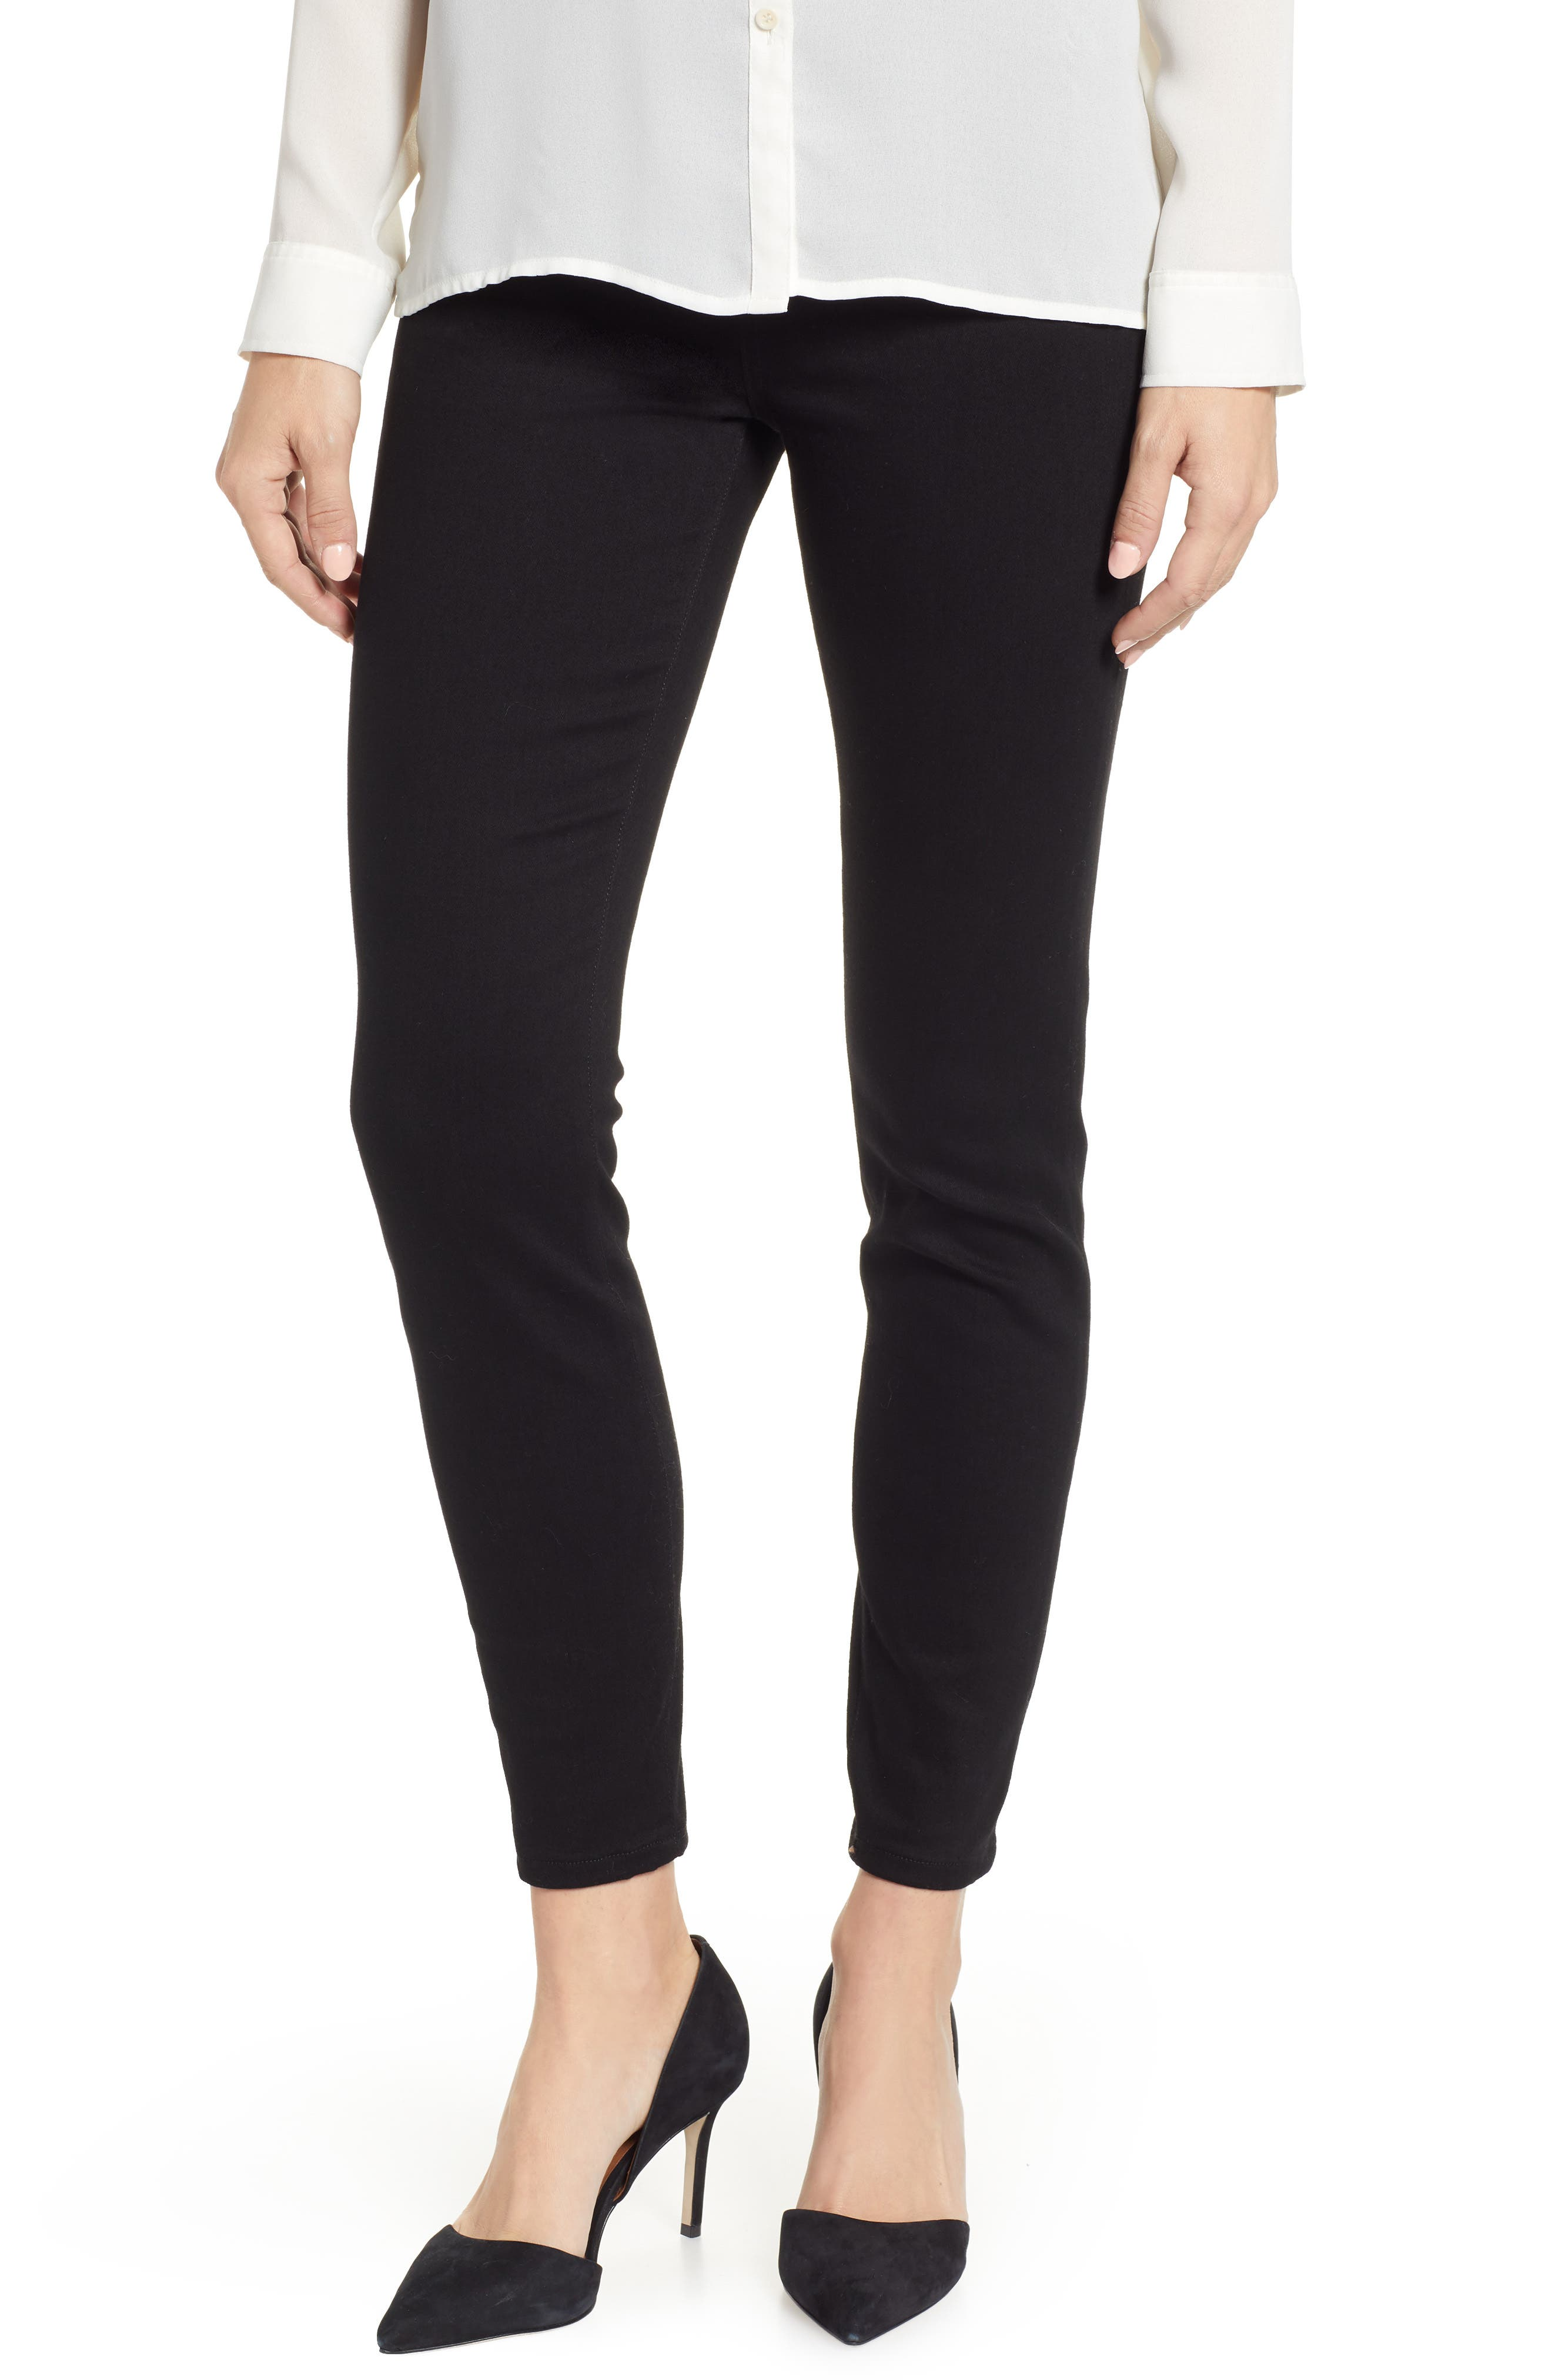 Chloe Pull-On Stretch Skinny Ankle Jeans,                         Main,                         color, BLACK RINSE